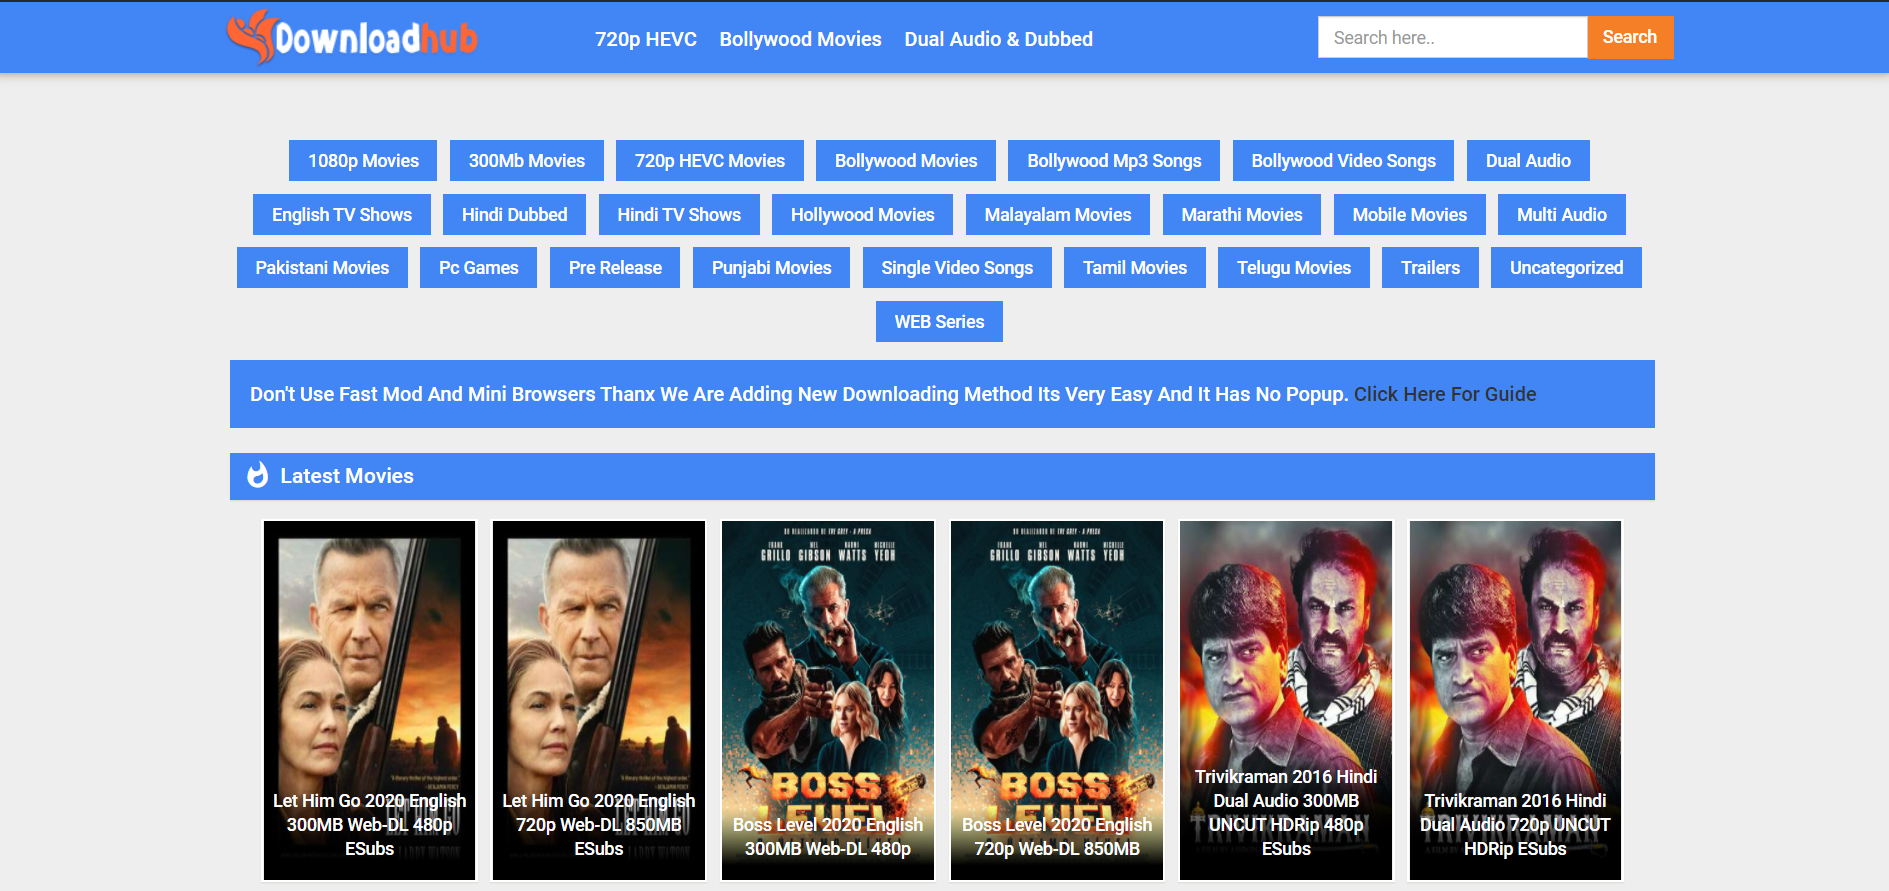 DownloadHub: HD Movies Download Website - Admission Guidance